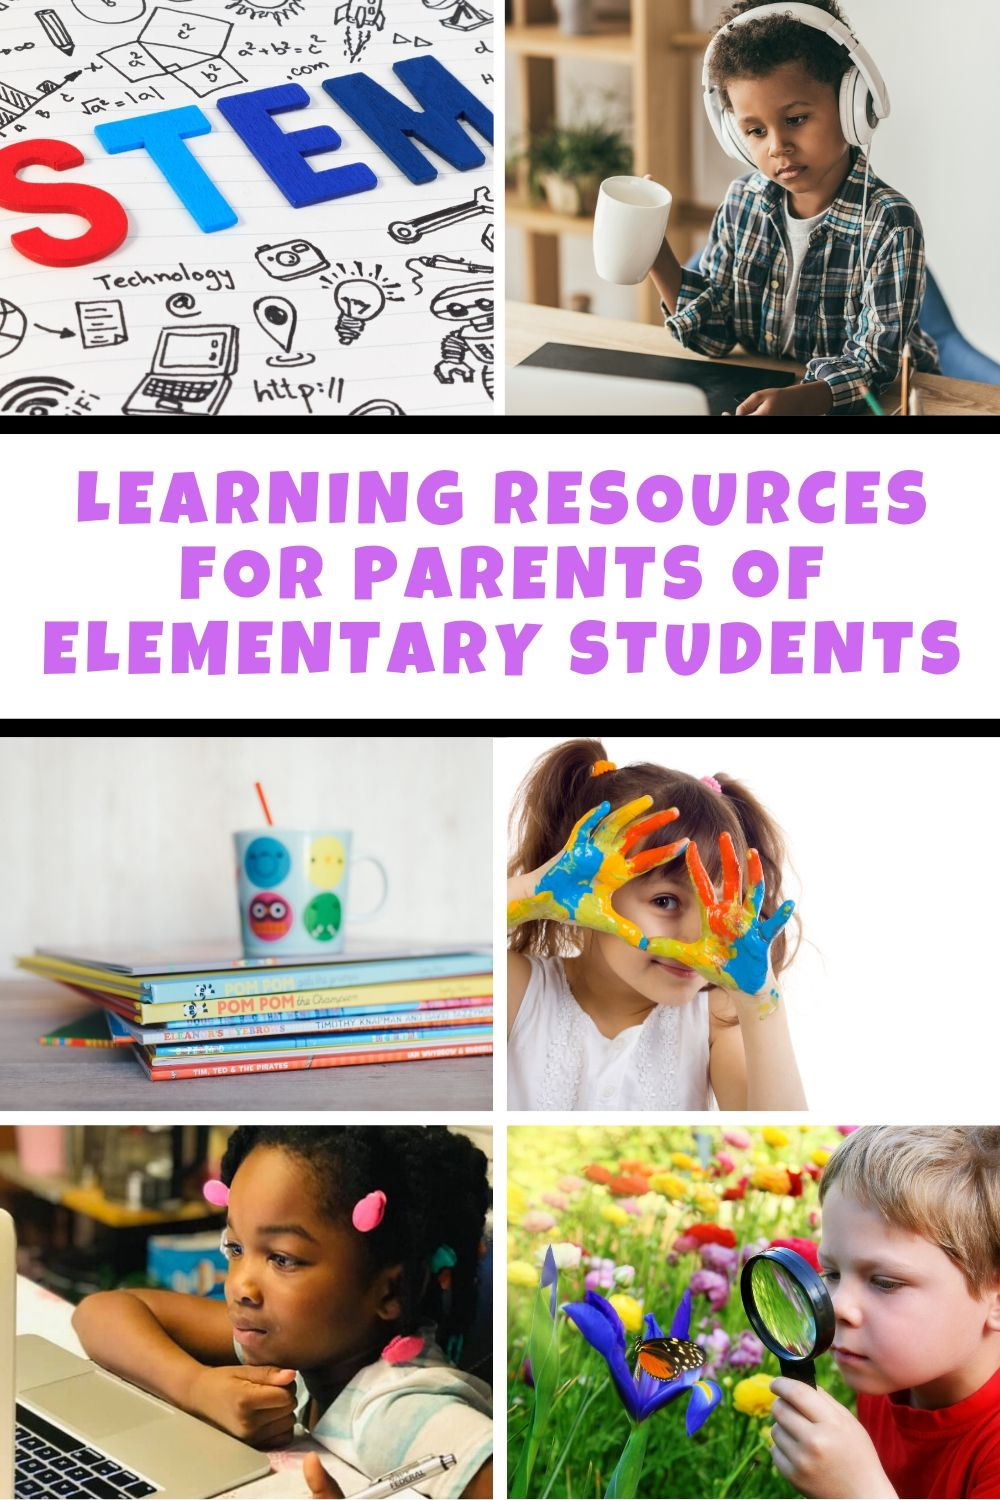 A collaboration of bloggers bringing at home learning resources for homeschooling parents. Topics include Spanish learning at home for dual language immersion students and more.